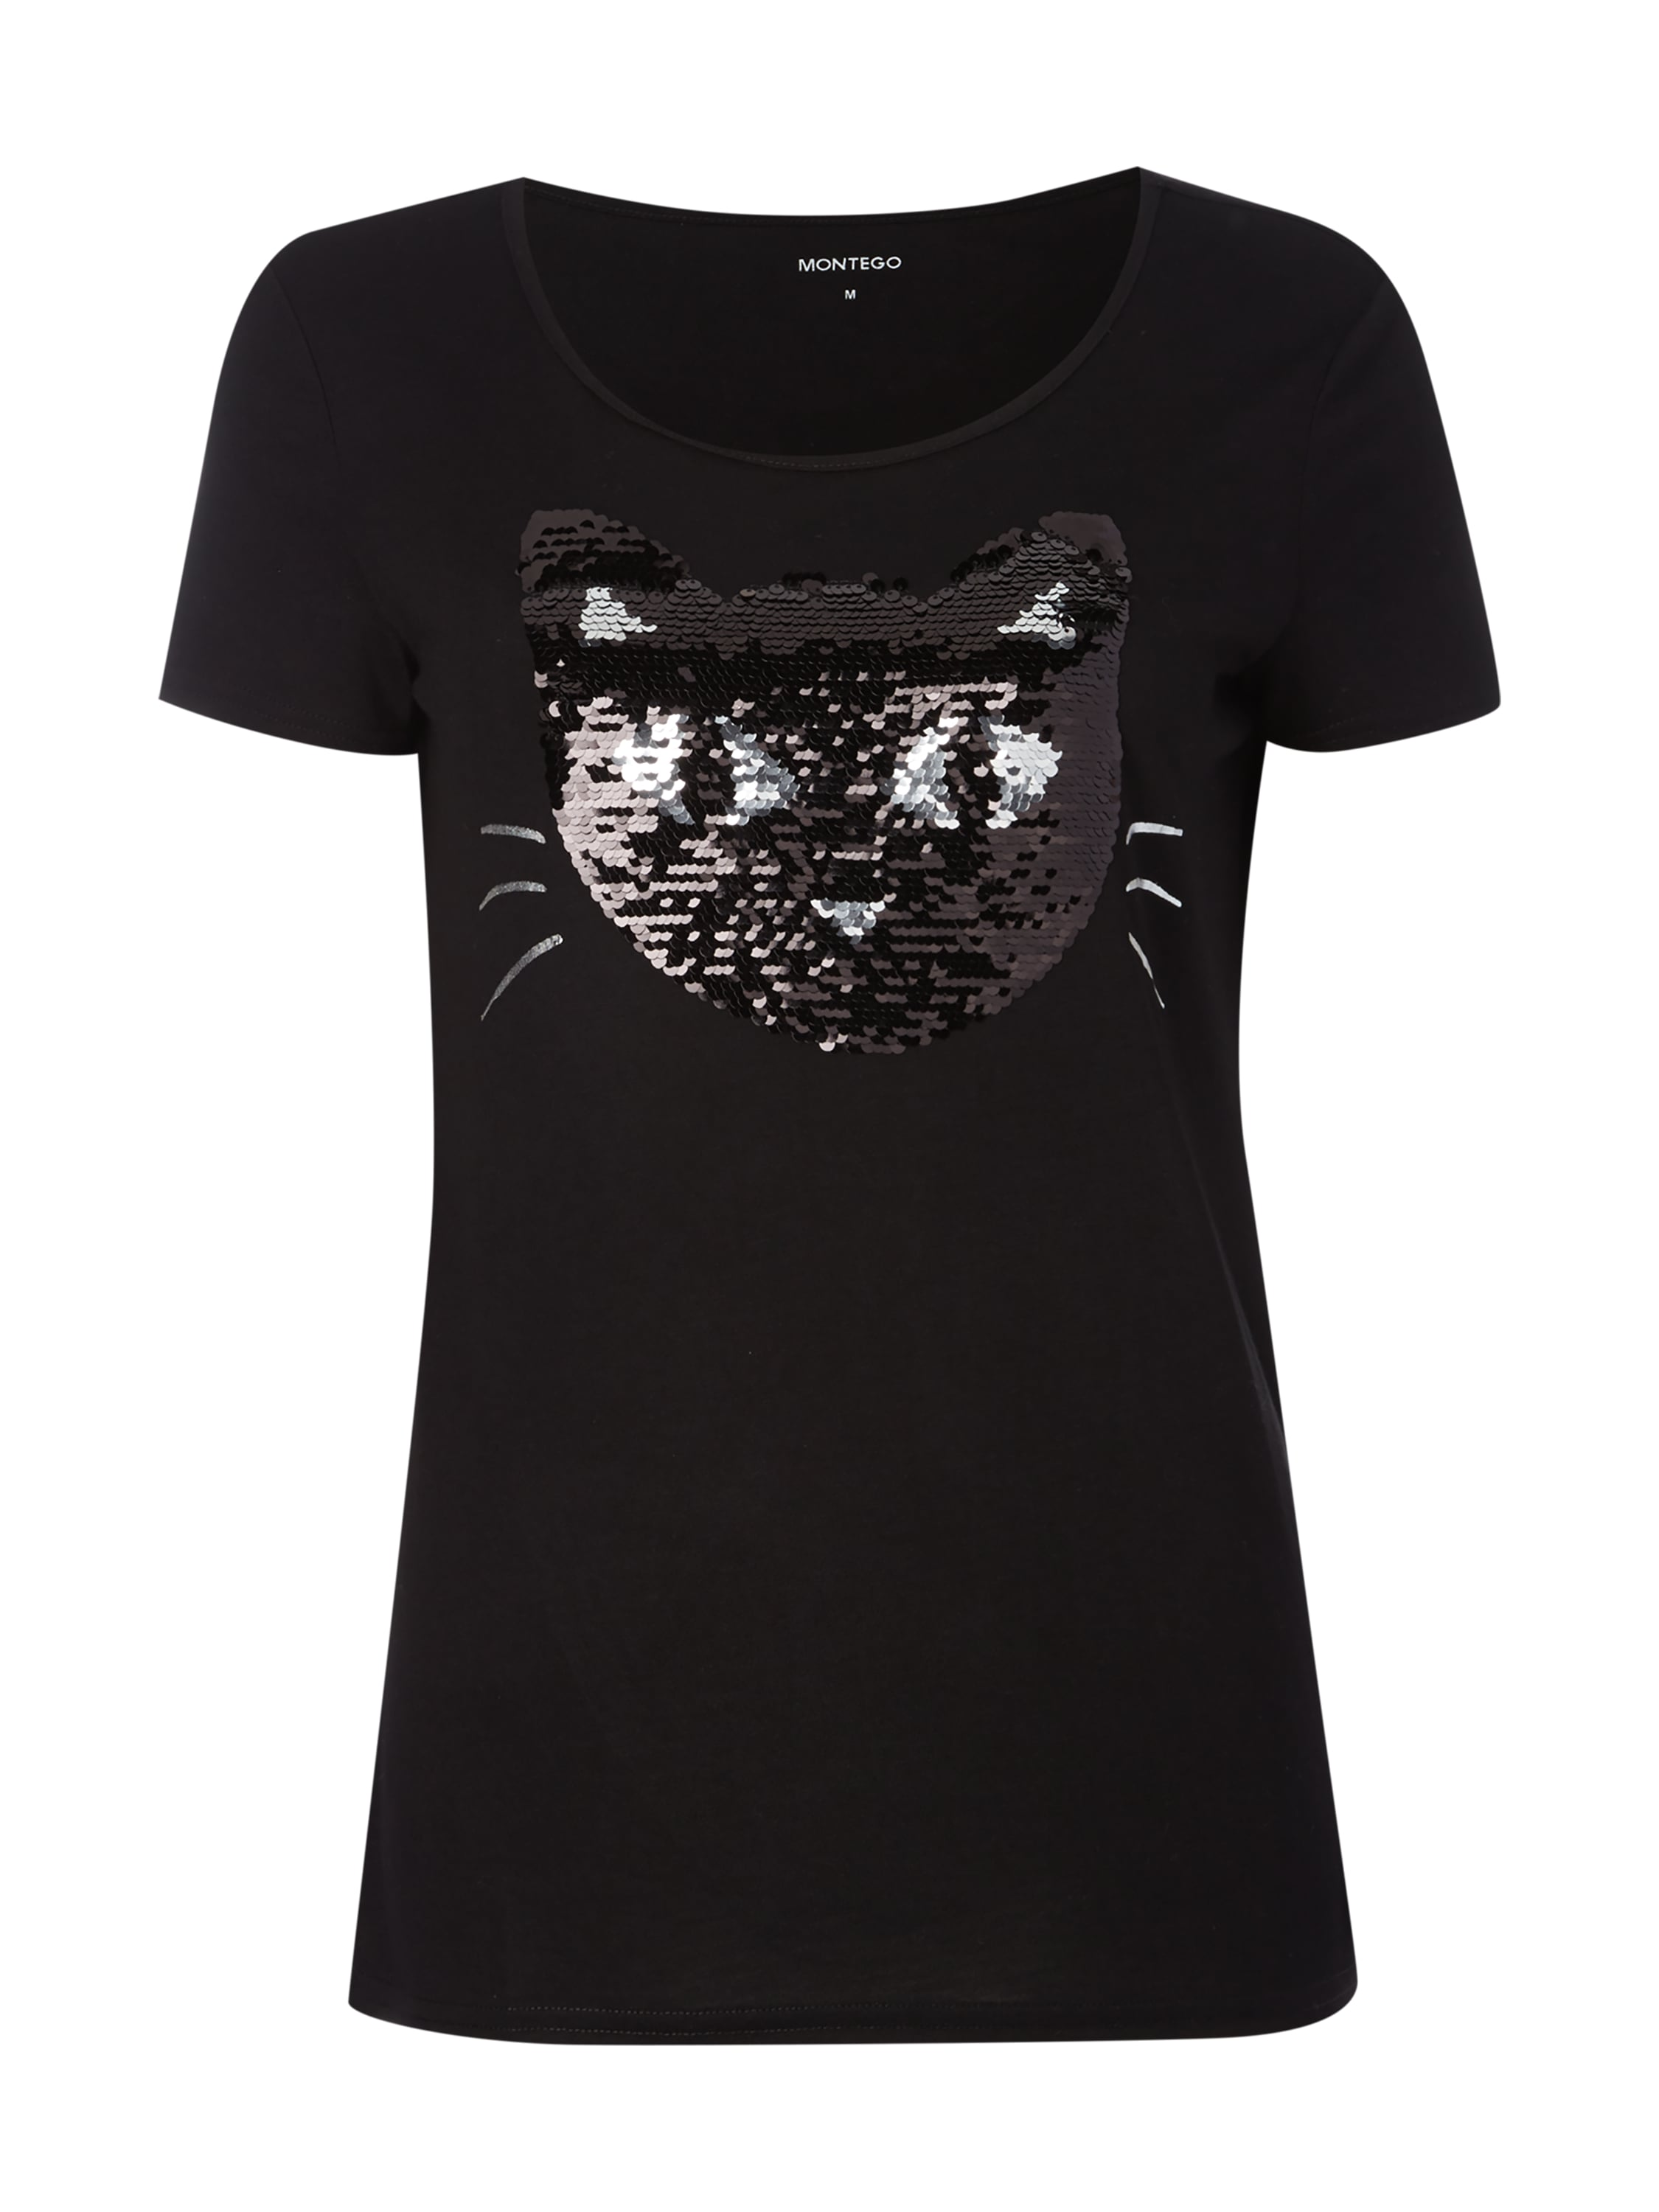 montego t shirt mit wende pailletten in grau schwarz. Black Bedroom Furniture Sets. Home Design Ideas